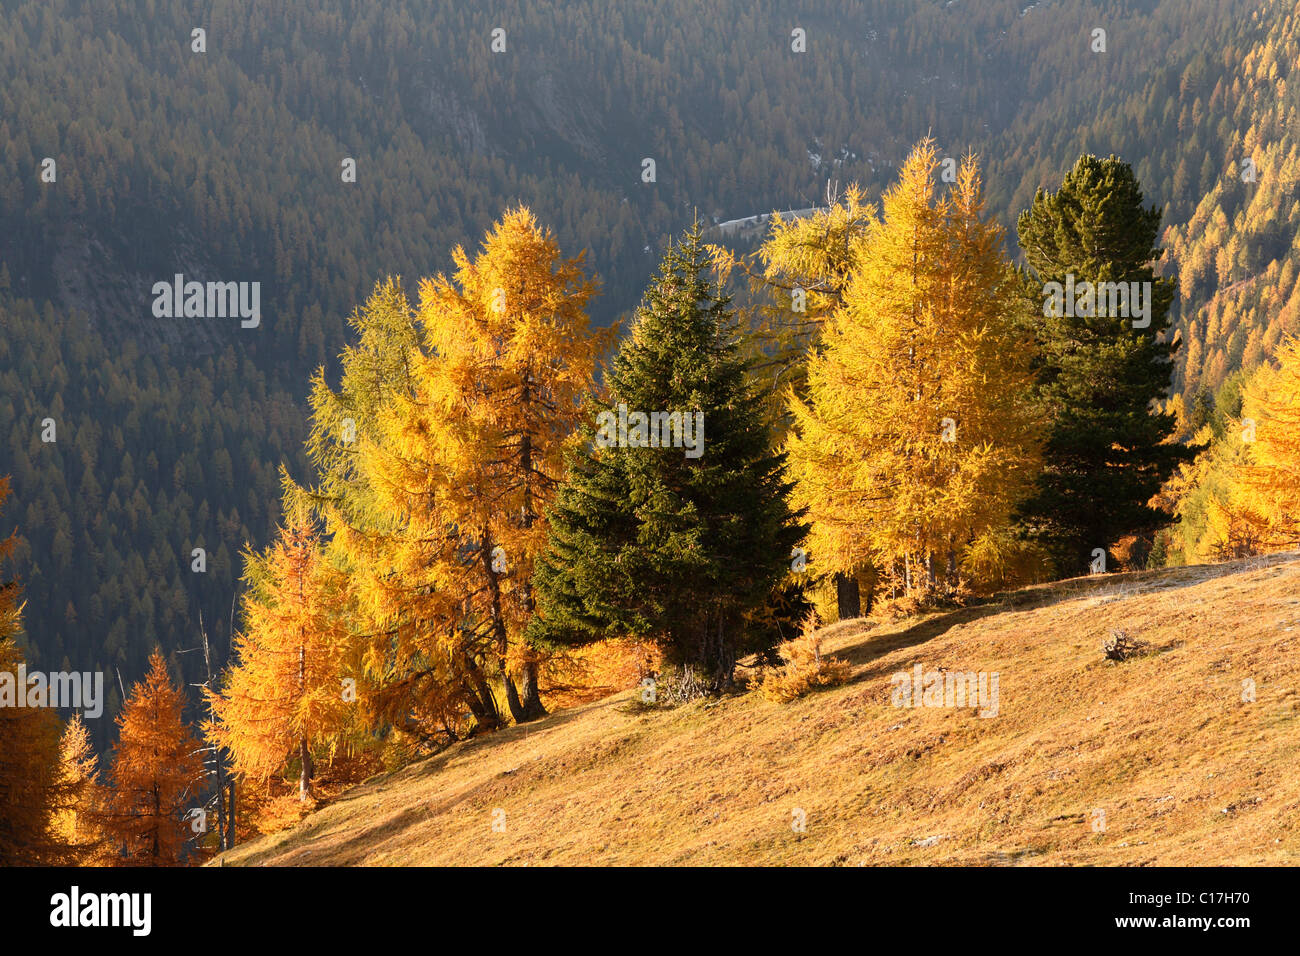 Nockberge National Park, autumnal larch forest, view from Nockalm road, Carinthia, Austria, Europe - Stock Image